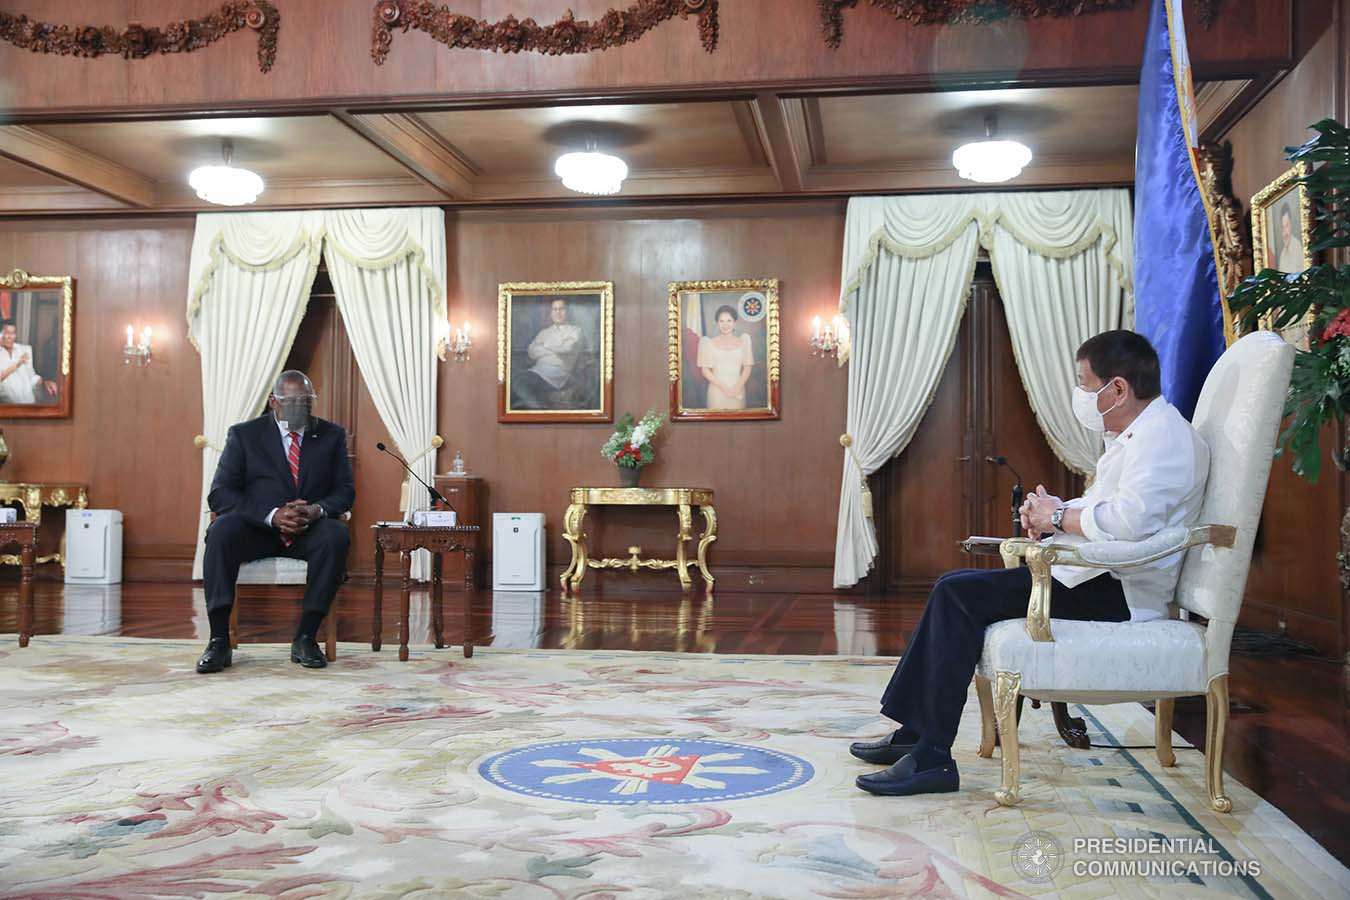 President Rodrigo Roa Duterte discusses matters with US Secretary of Defense Lloyd Austin III during a courtesy call on the President at the Malacañang Palace on July 29, 2021. ROBINSON NIÑAL/ PRESIDENTIAL PHOTO